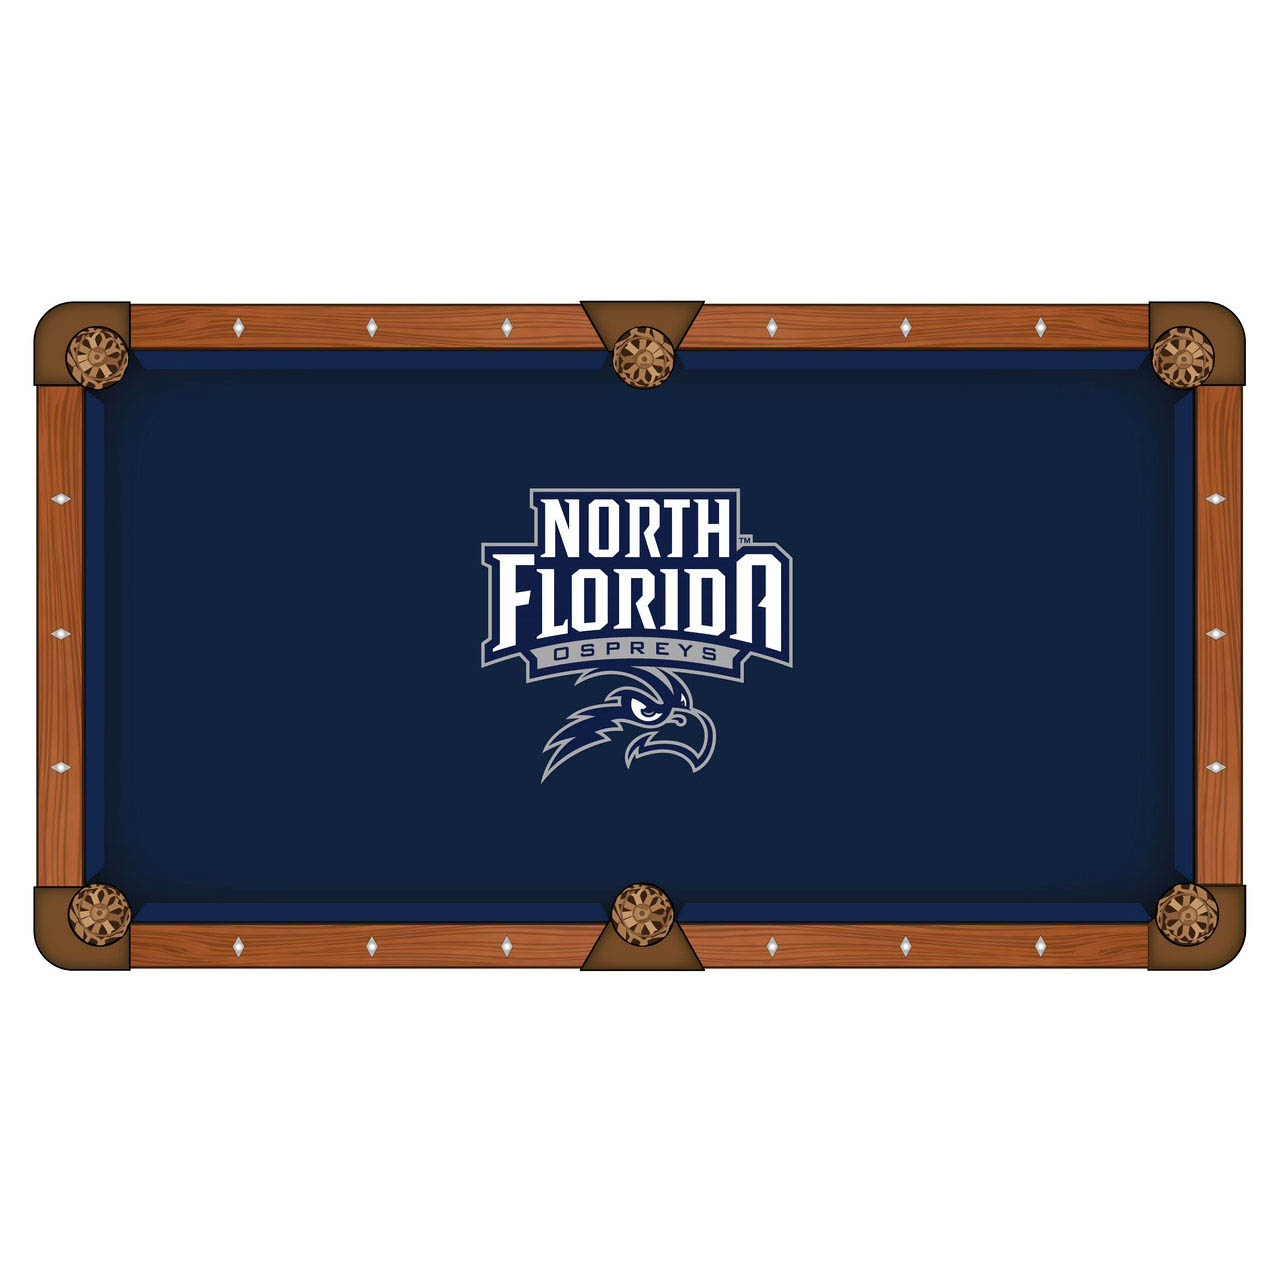 Design University North Florida Pool Table Cloth Product Photo